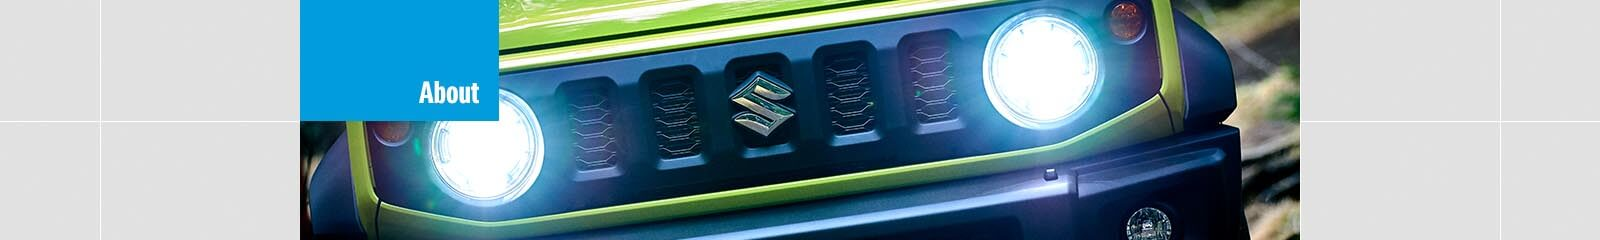 Jimny front grille